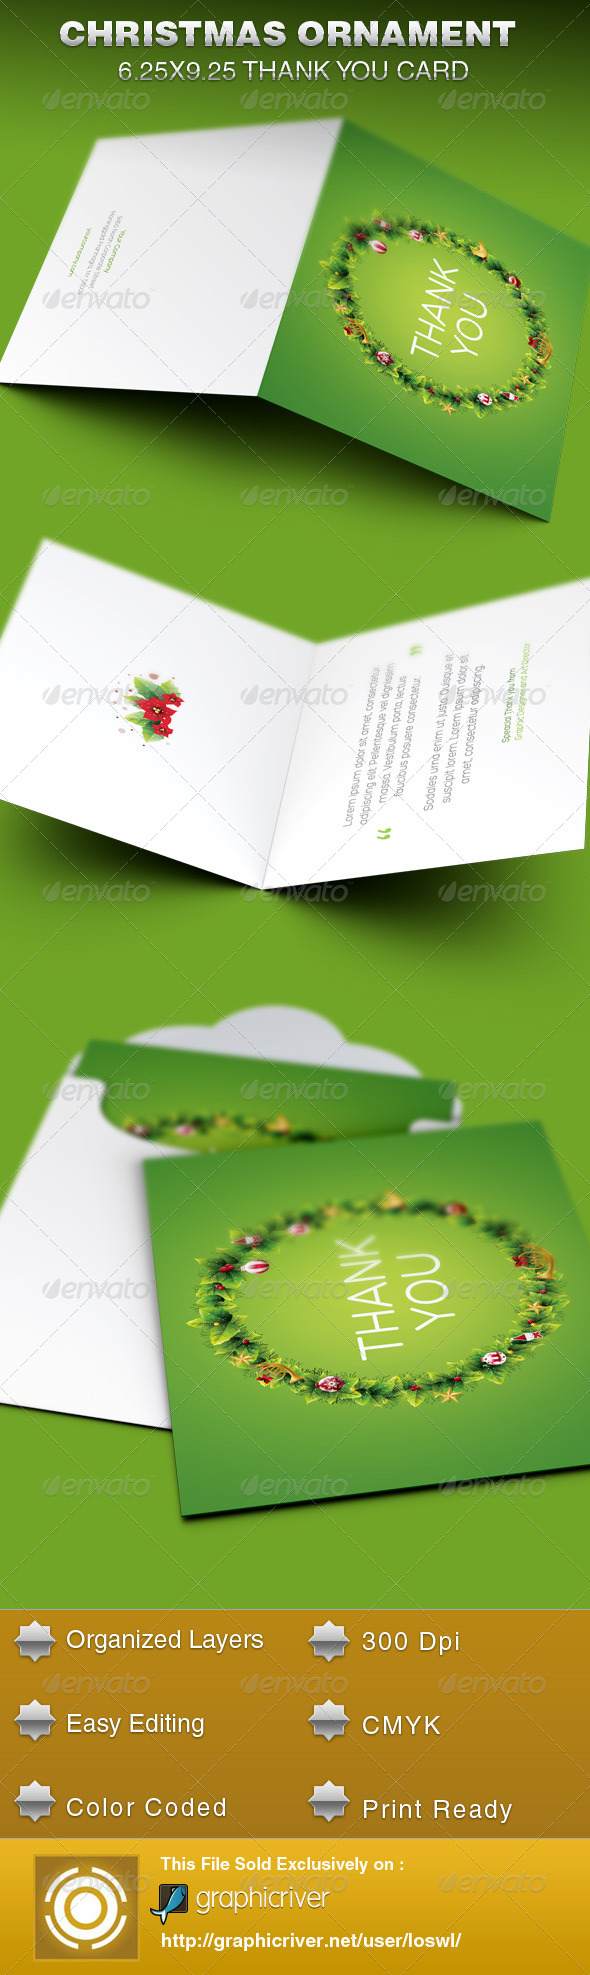 GraphicRiver Christmas Ornament Thank You Card Template 6289656